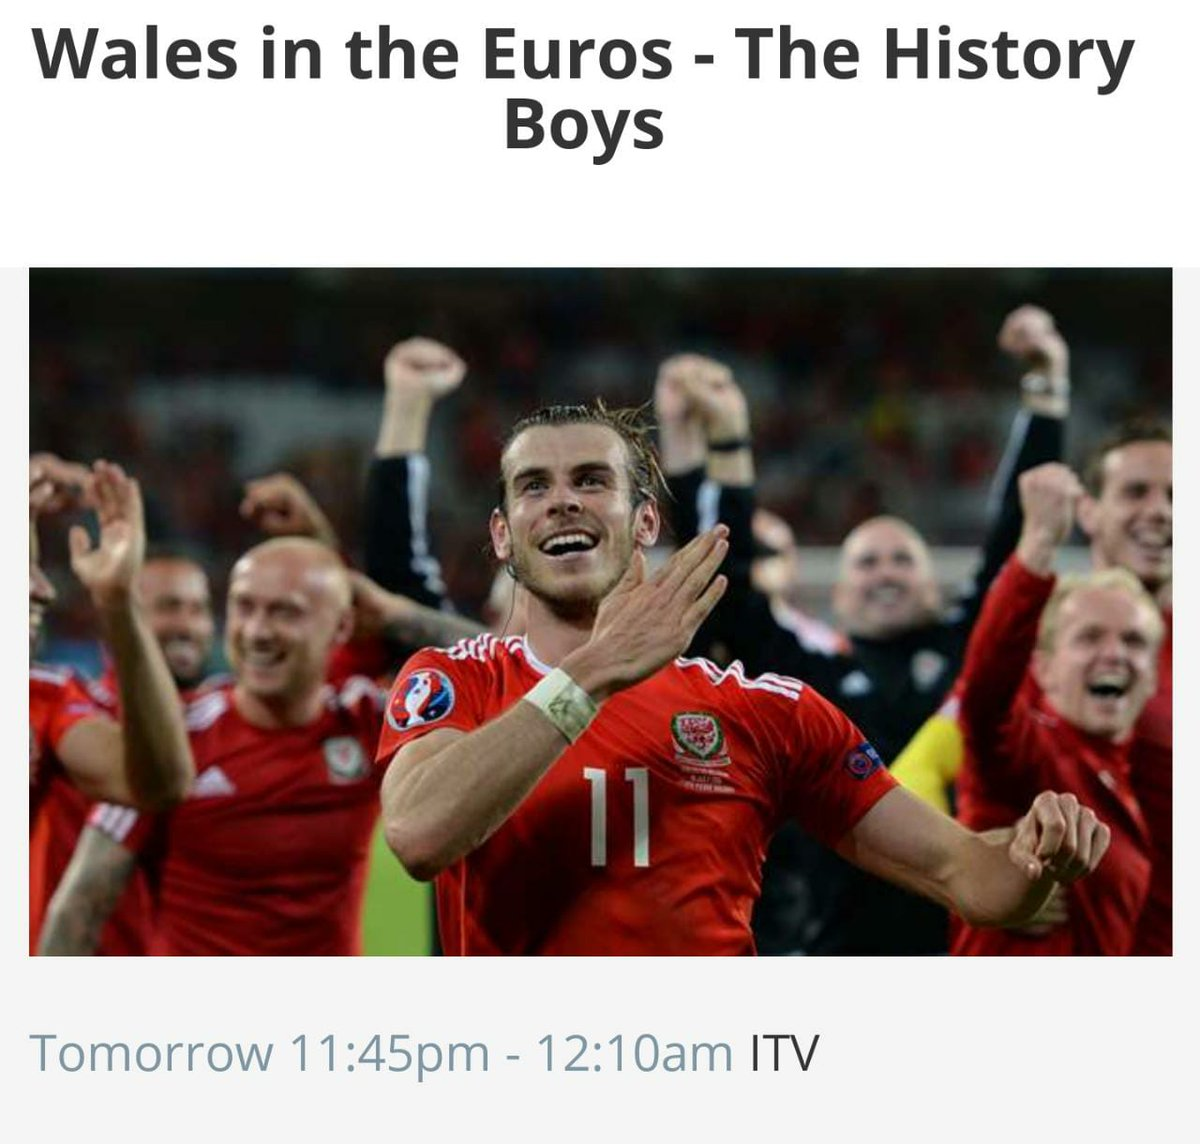 To our Friends & Family in the UK, check this out:   A chance to go #DownMemoryLane and relive Wales' heroic run at #Euro2016   A documentary made by our very own @barn_media.  Catch it on ITV / ITV Player at 11:45 PM BST on July 1.   Do tune in! #TheHistoryBoys<br>http://pic.twitter.com/MTPCoWrRyn